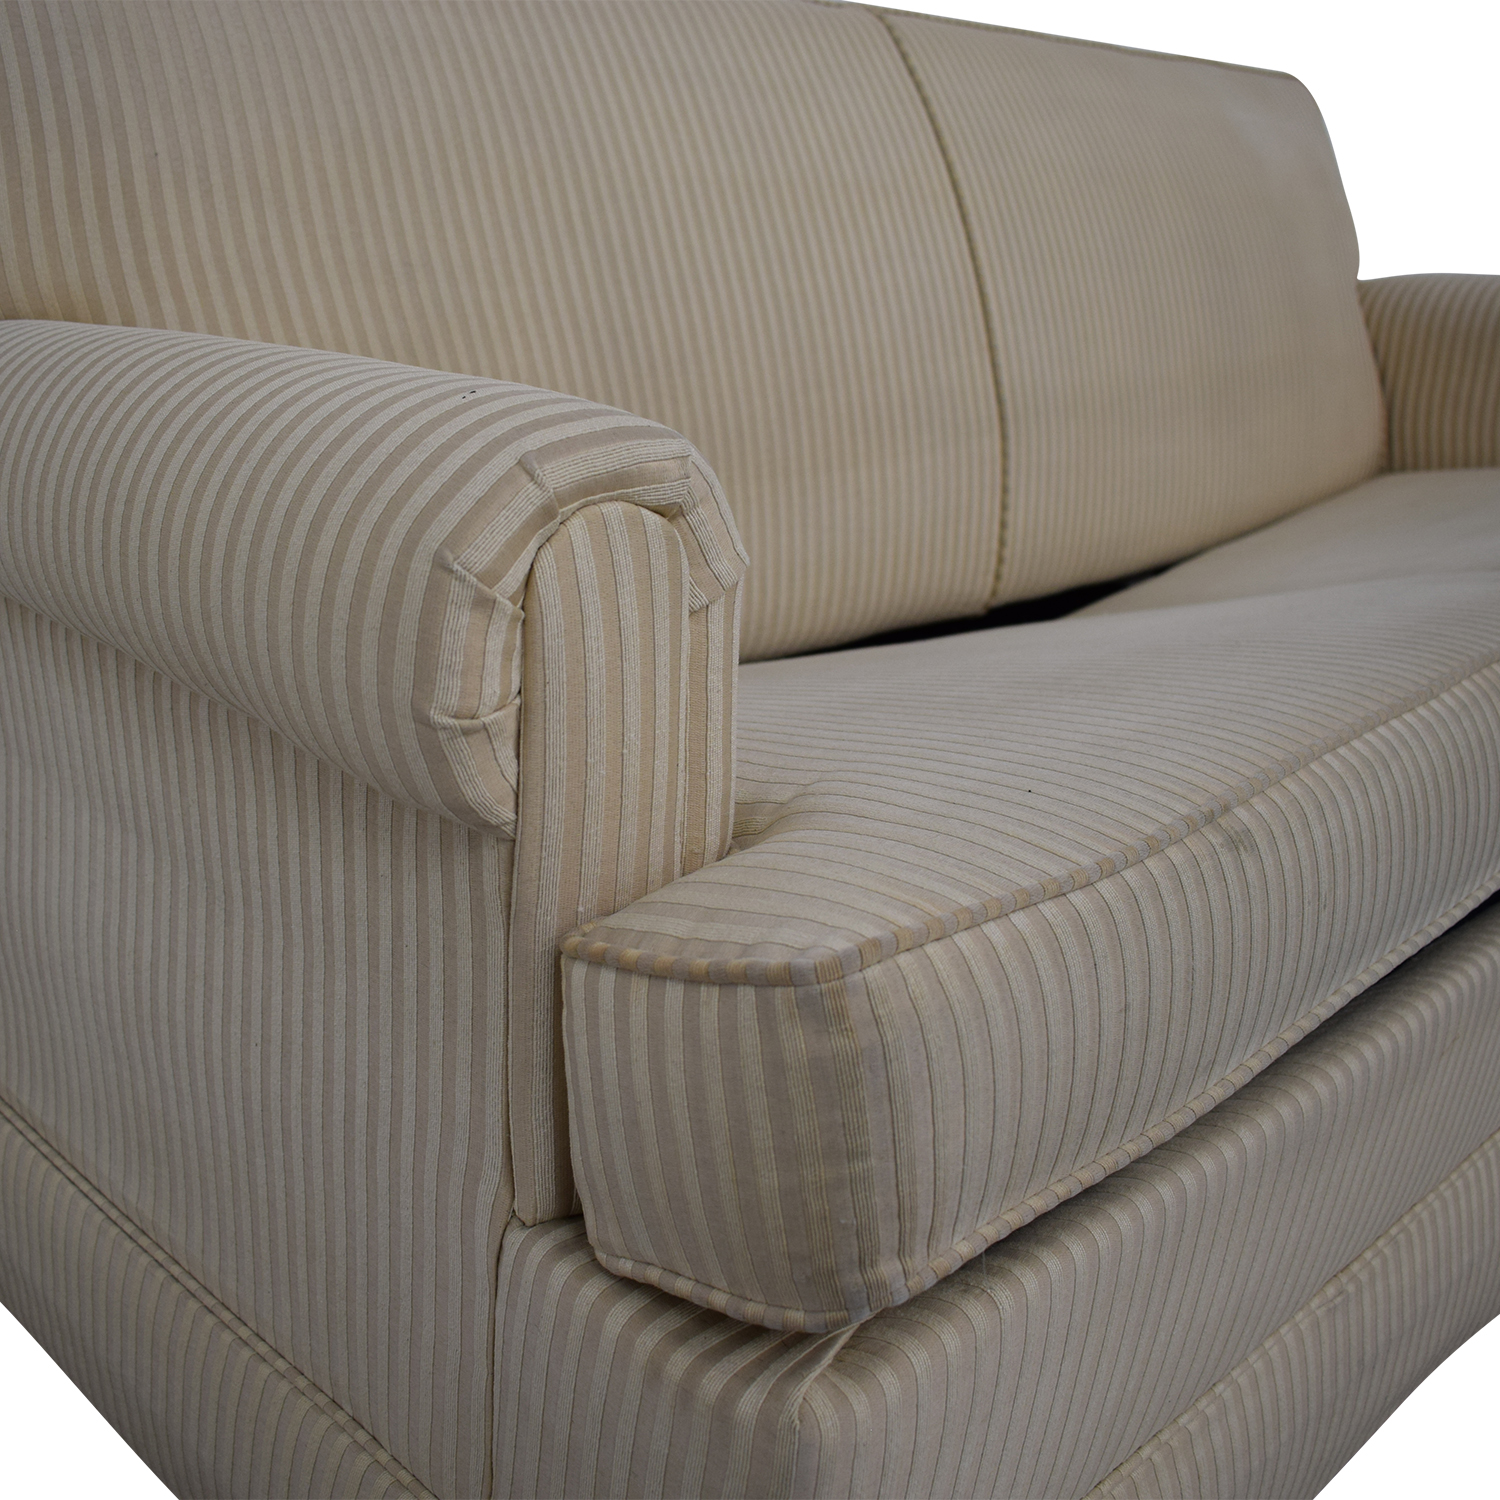 Stearns & Foster Stearns & Foster Two-Cushion Sleeper Sofa coupon